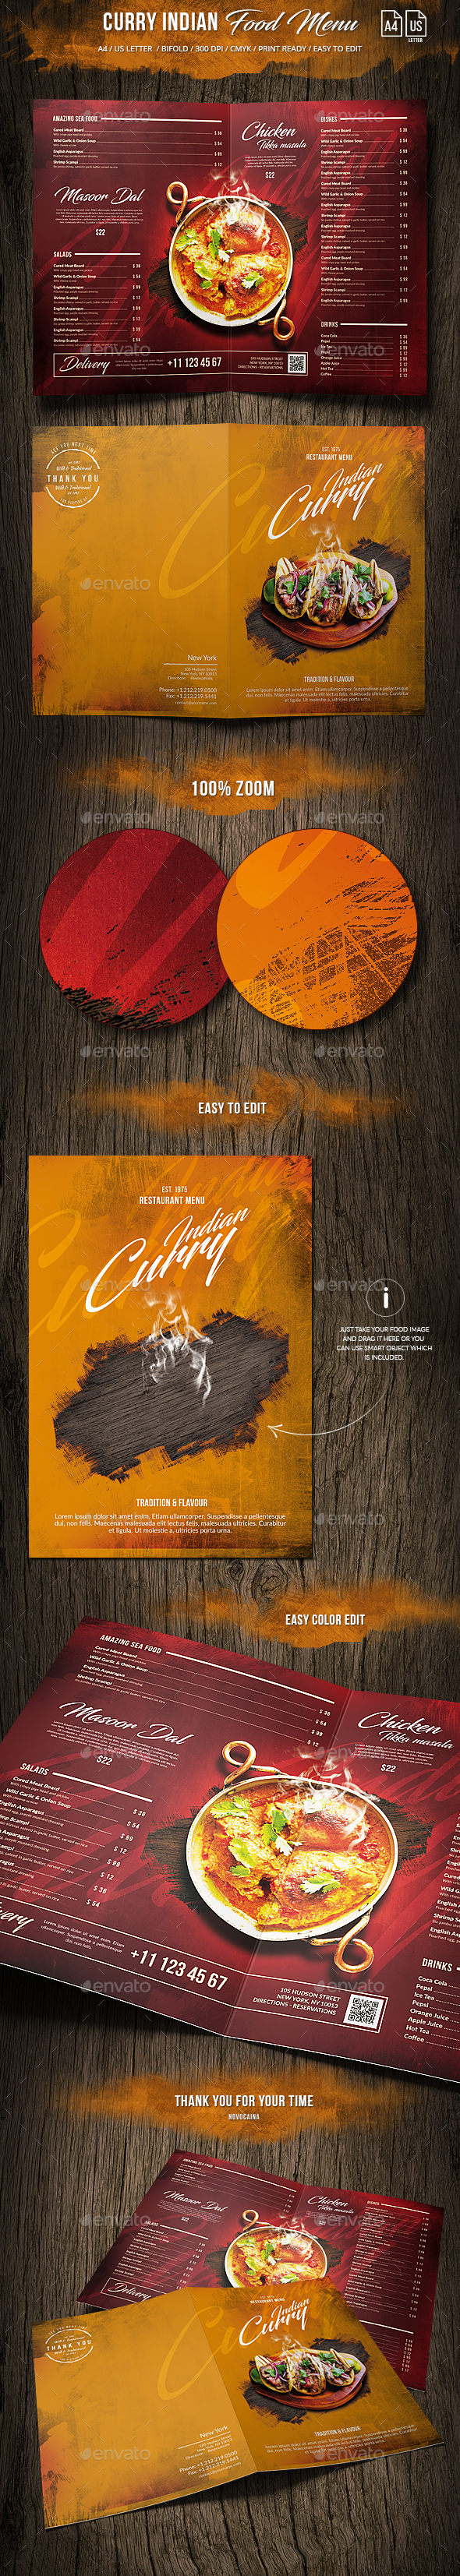 Curry Indian Food Menu - A4 and US Letter Bi-Fold - Food Menus Print Templates